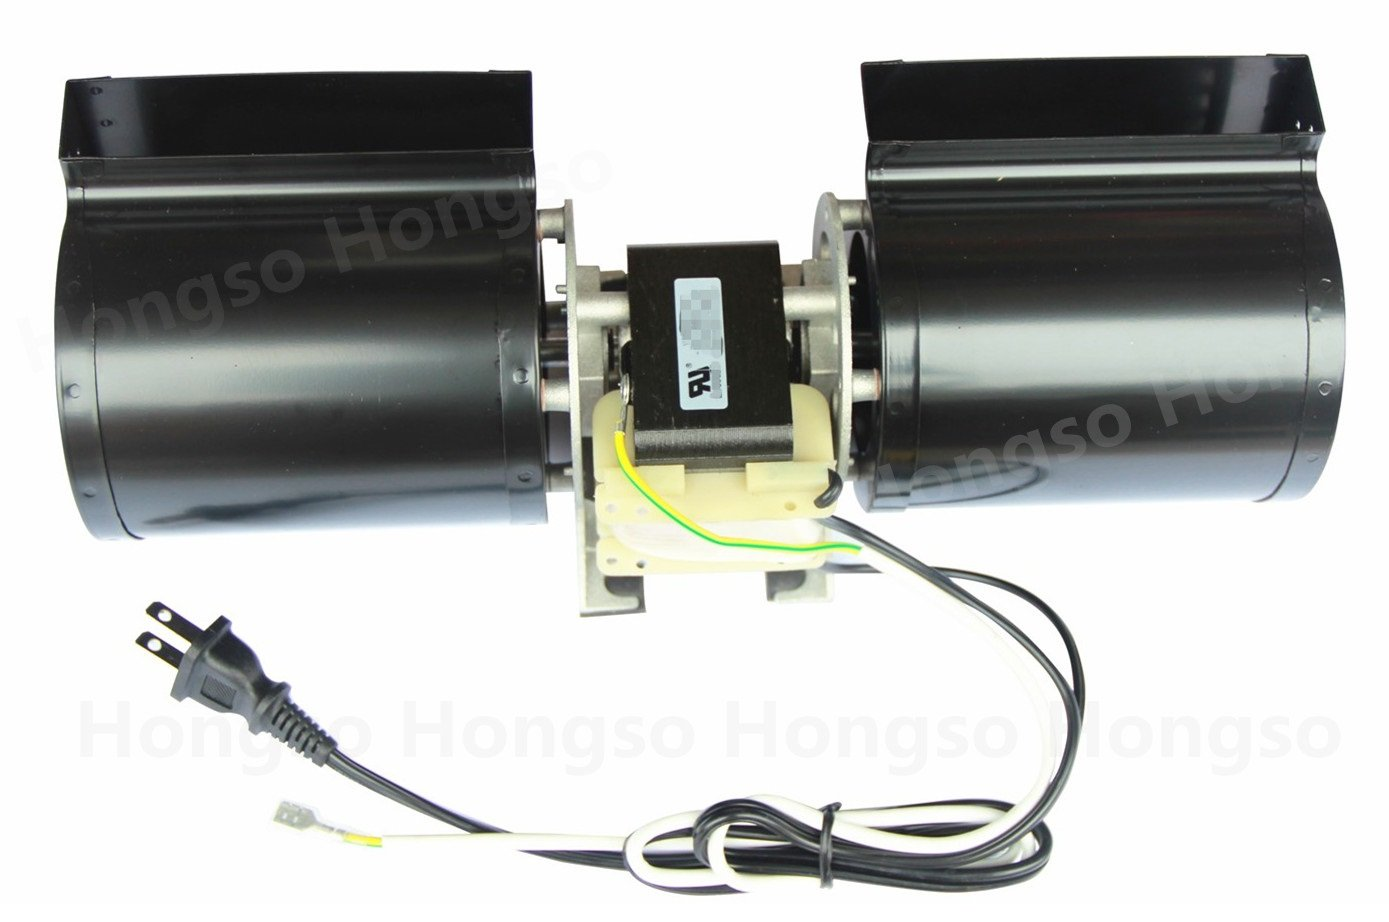 Hongso Gfk 160 Gfk 160a Gfk160 Replacement Fireplace Blower Unit For Heat N Ebay